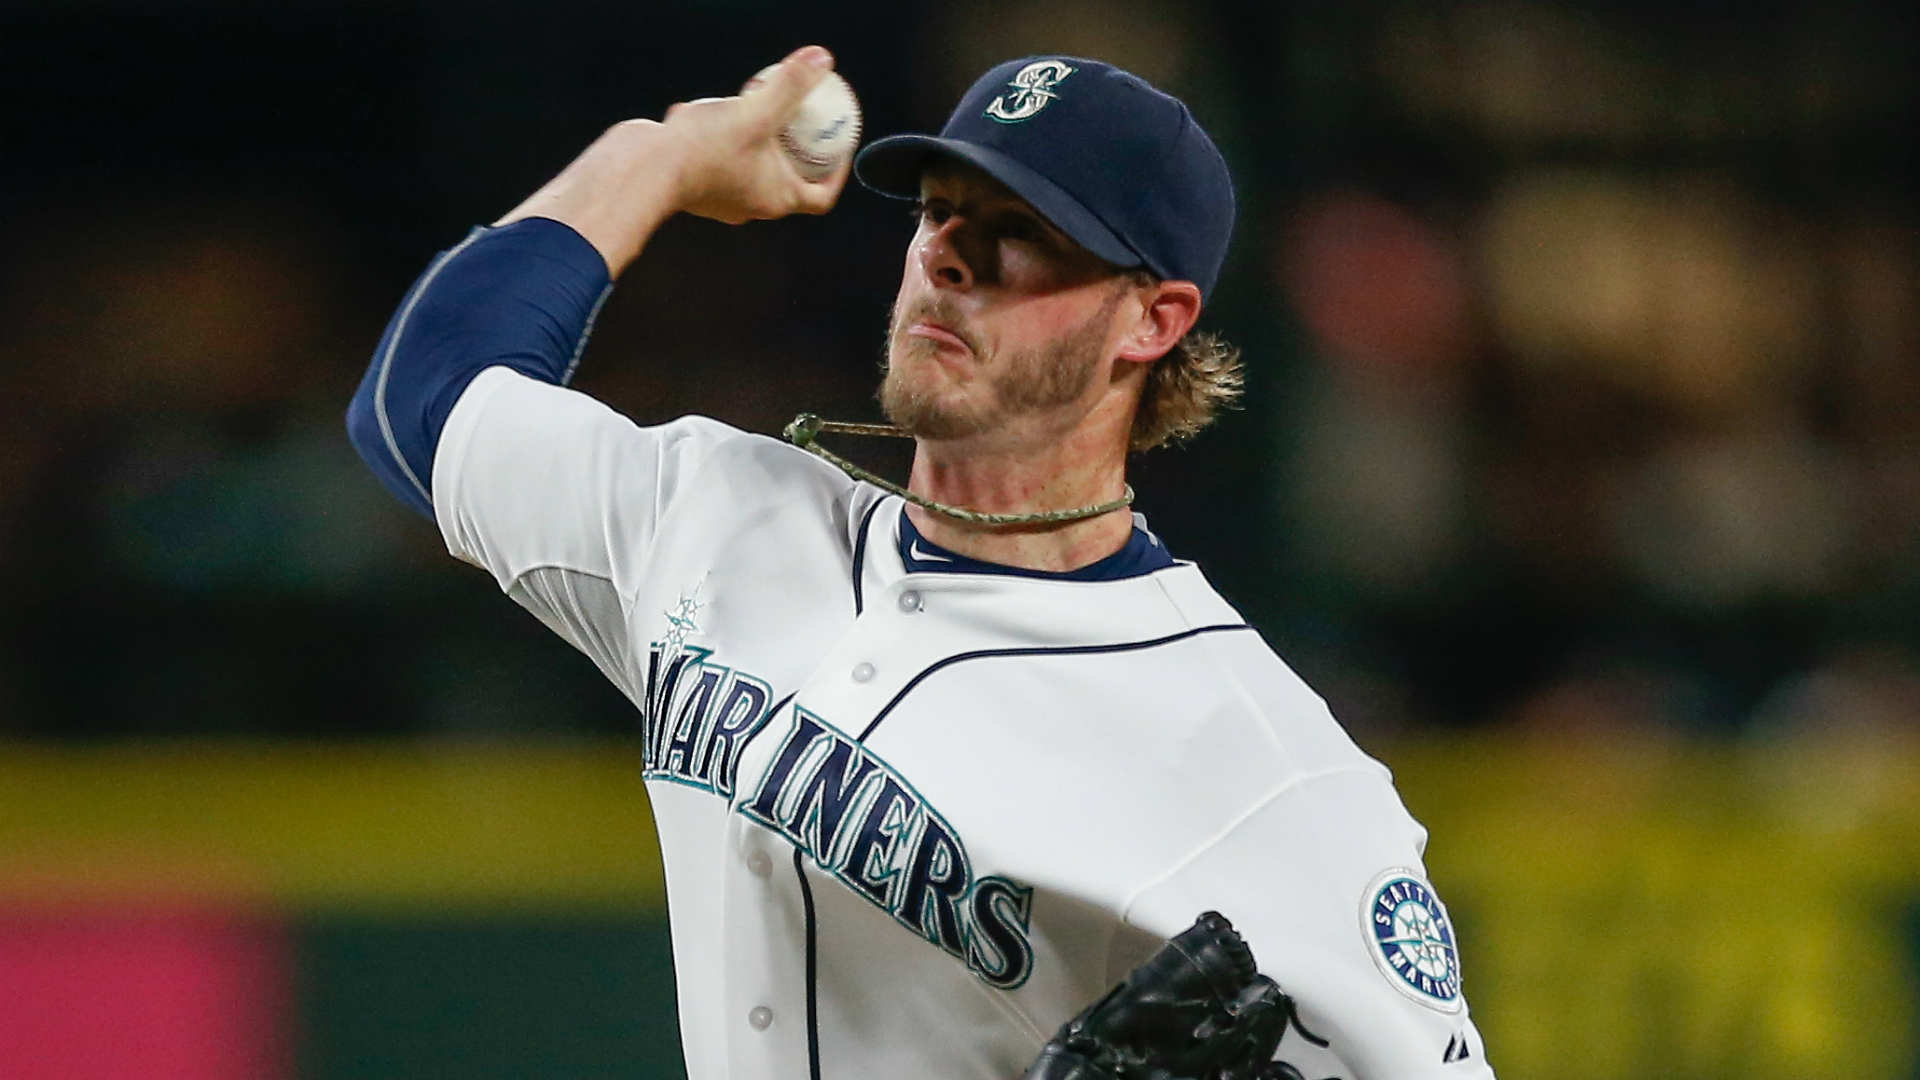 Mariners' minor leaguers rack up $683 Uber bill